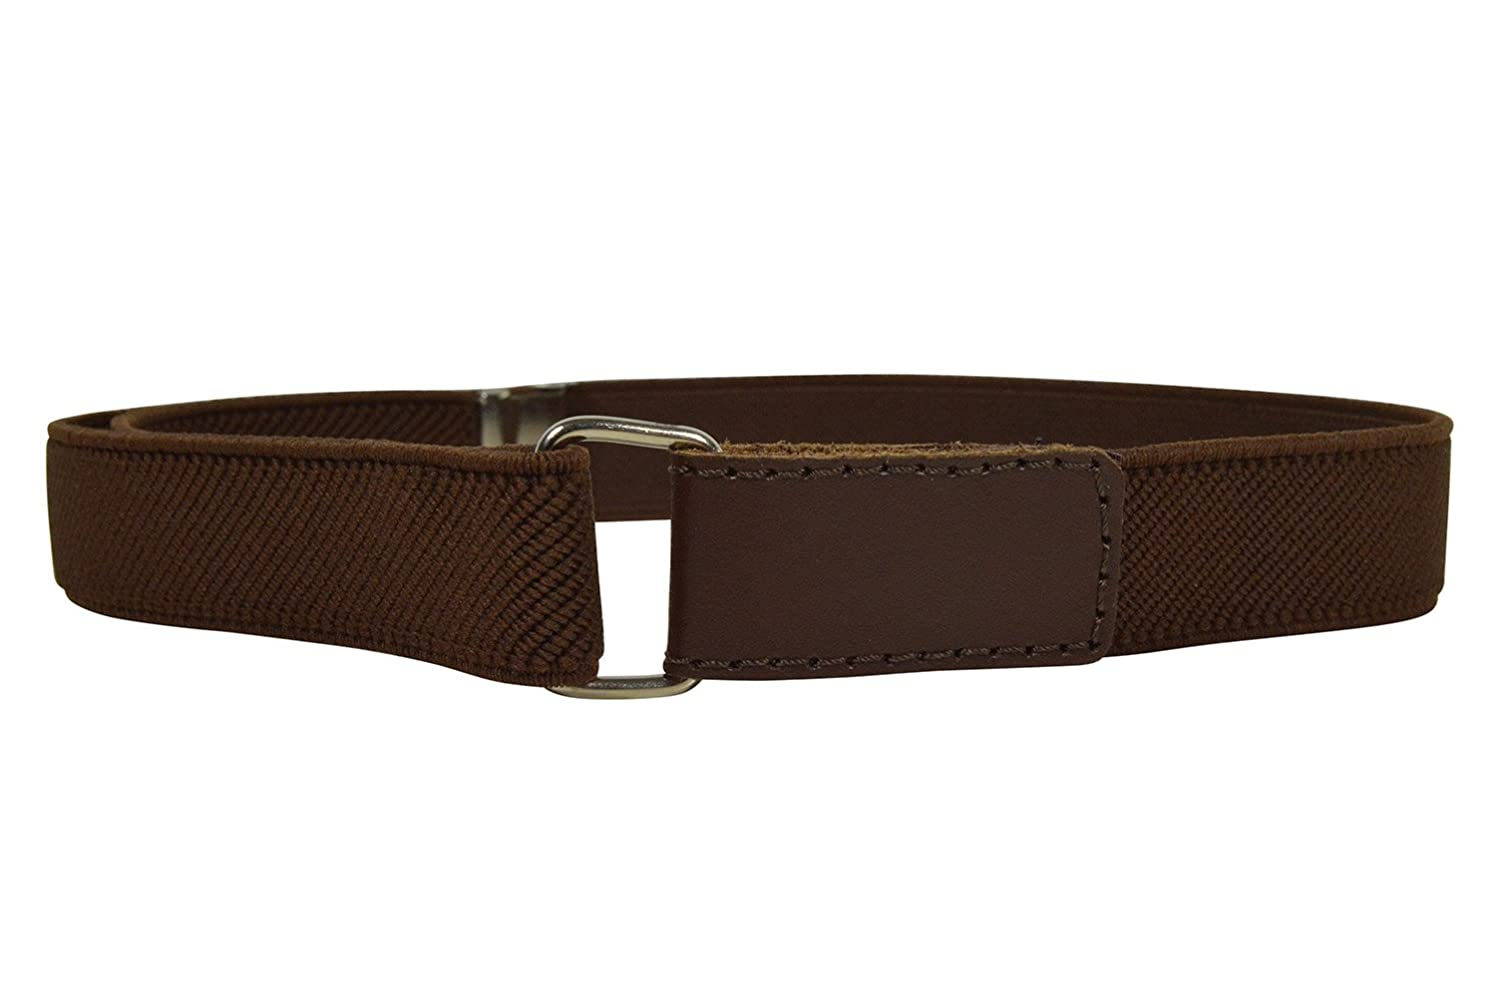 Childrens 1-15 Years fully adjustable Stretch Belt with Hook and Loop Fastening